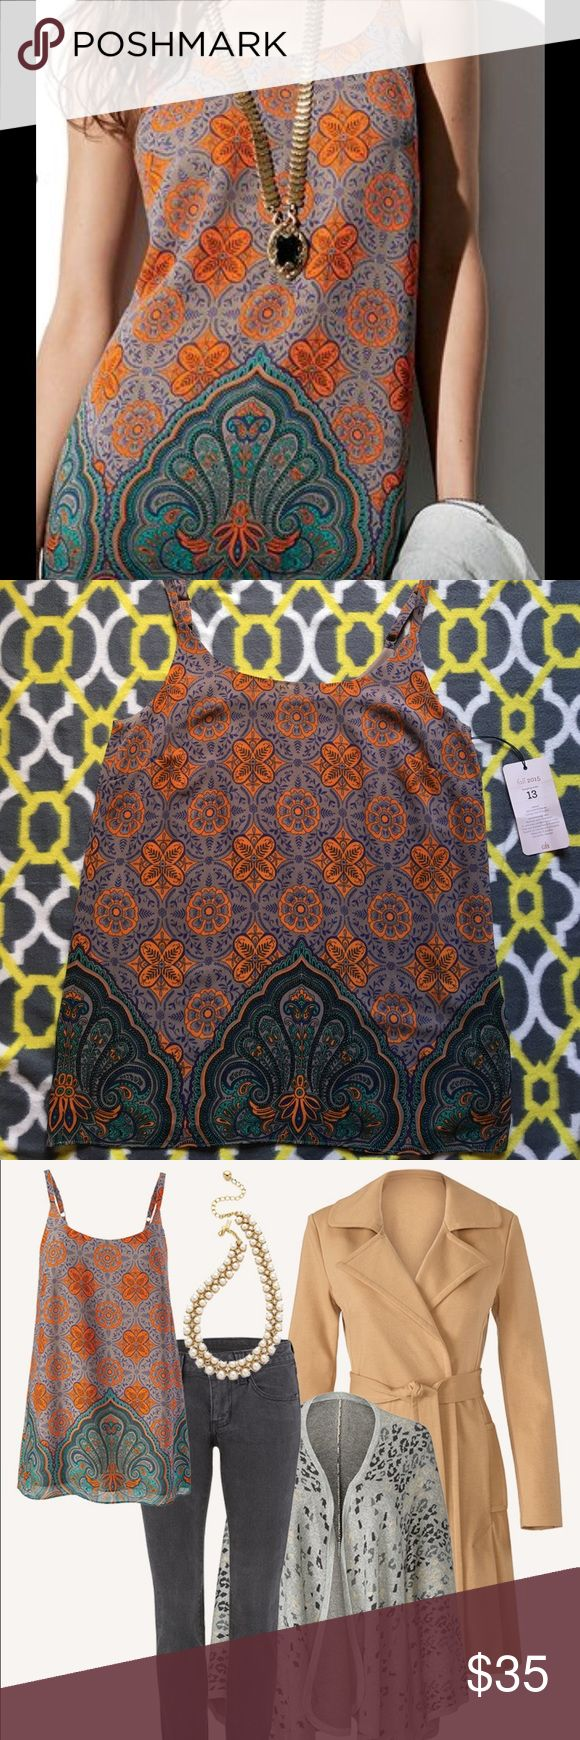 Women's Cabi Adjustable Spaghetti Strap top. From the CAbi Fall 2015 Collection comes this Arabesque Cami featuring adjustable spaghetti straps, fully lined, darts at bust, all in a beautiful geometric pattern of brown base with orange, bluish purple, green and touch of black.  Versatile piece for work or play.  Pair it with a structured blazer and skirt or dress it down with your favorite skinny jeans and a cardigan.  Tuck it in or wear it loose....it's got great flow, coverage and color…